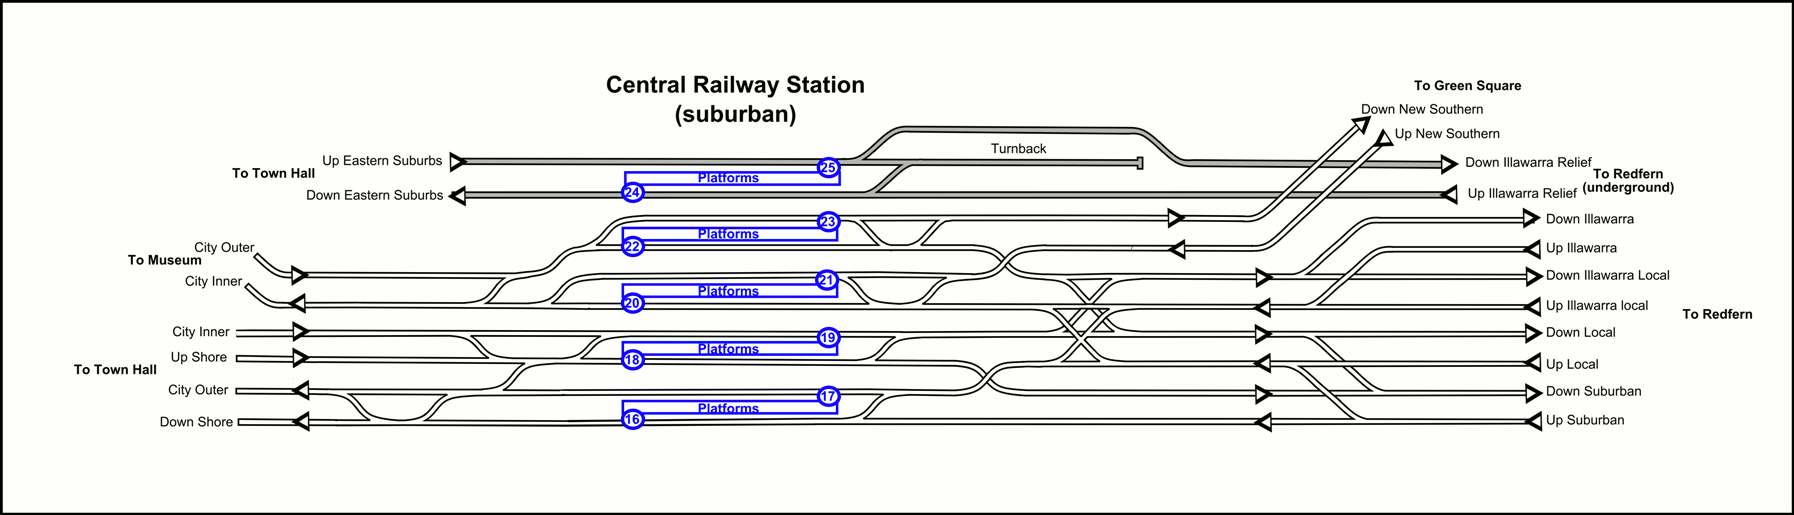 Central Railway Station Sydney Wikipedia October 2014 Circuit Wiring Diagram Must Know Diagrams And Mapsedit